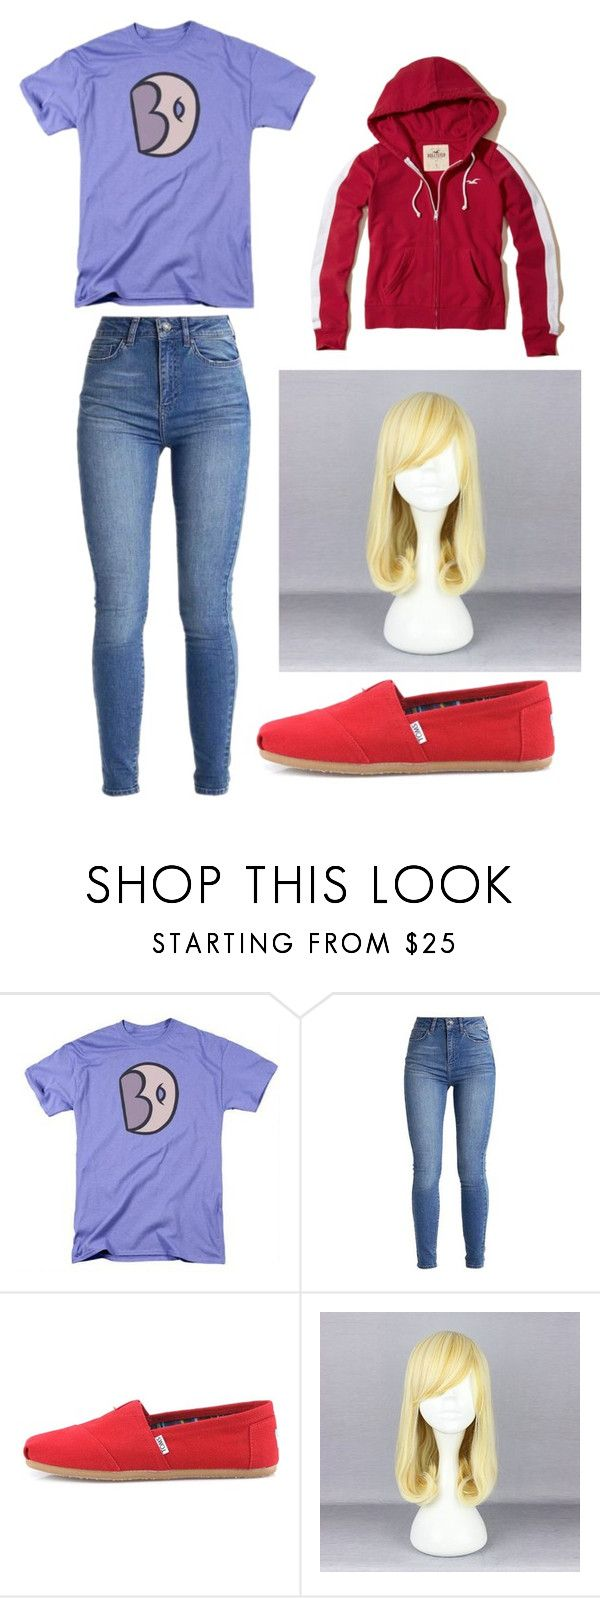 """Sadie Miller Cosplay - Steven Universe"" by adams-reagan-gca ❤ liked on Polyvore featuring TOMS, Hollister Co., cosplay and stevenuniverse"